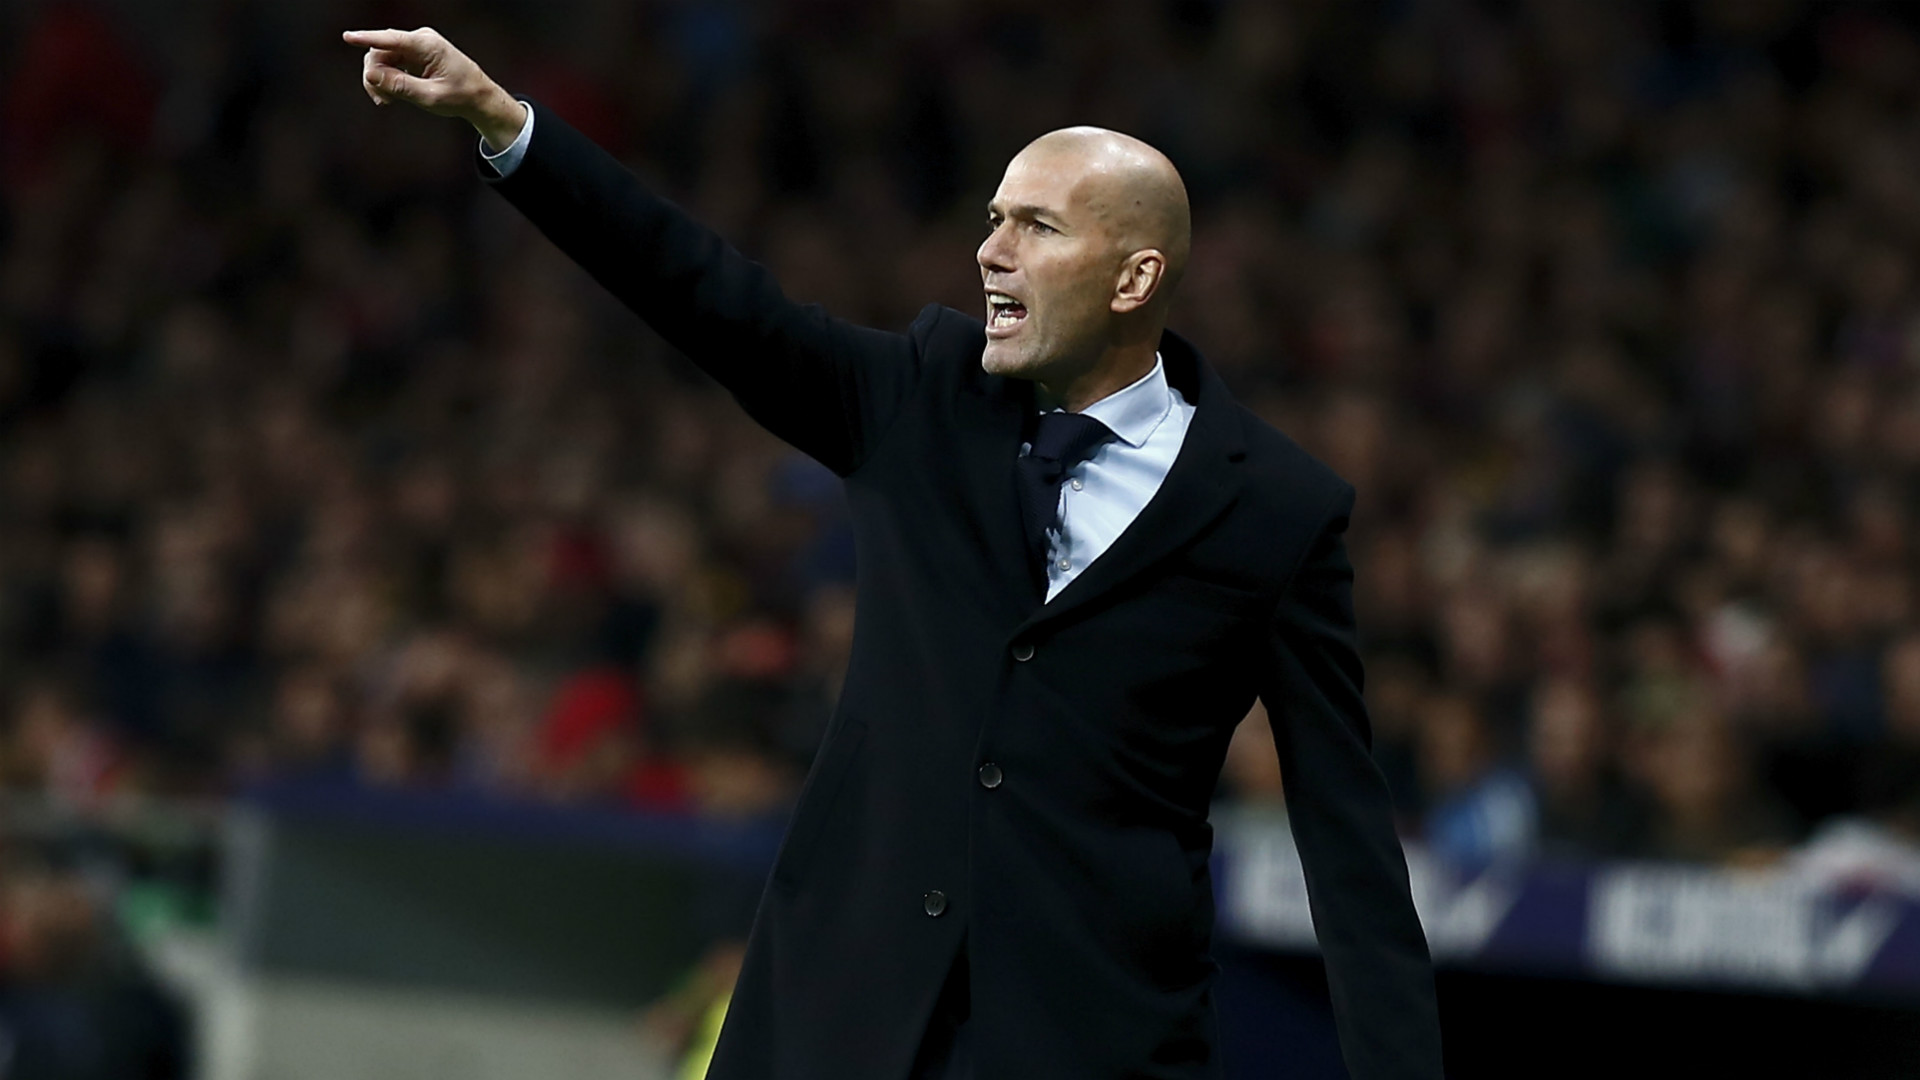 Defiant Zidane insists 'it hasn't all gone to s***' at Real Madrid